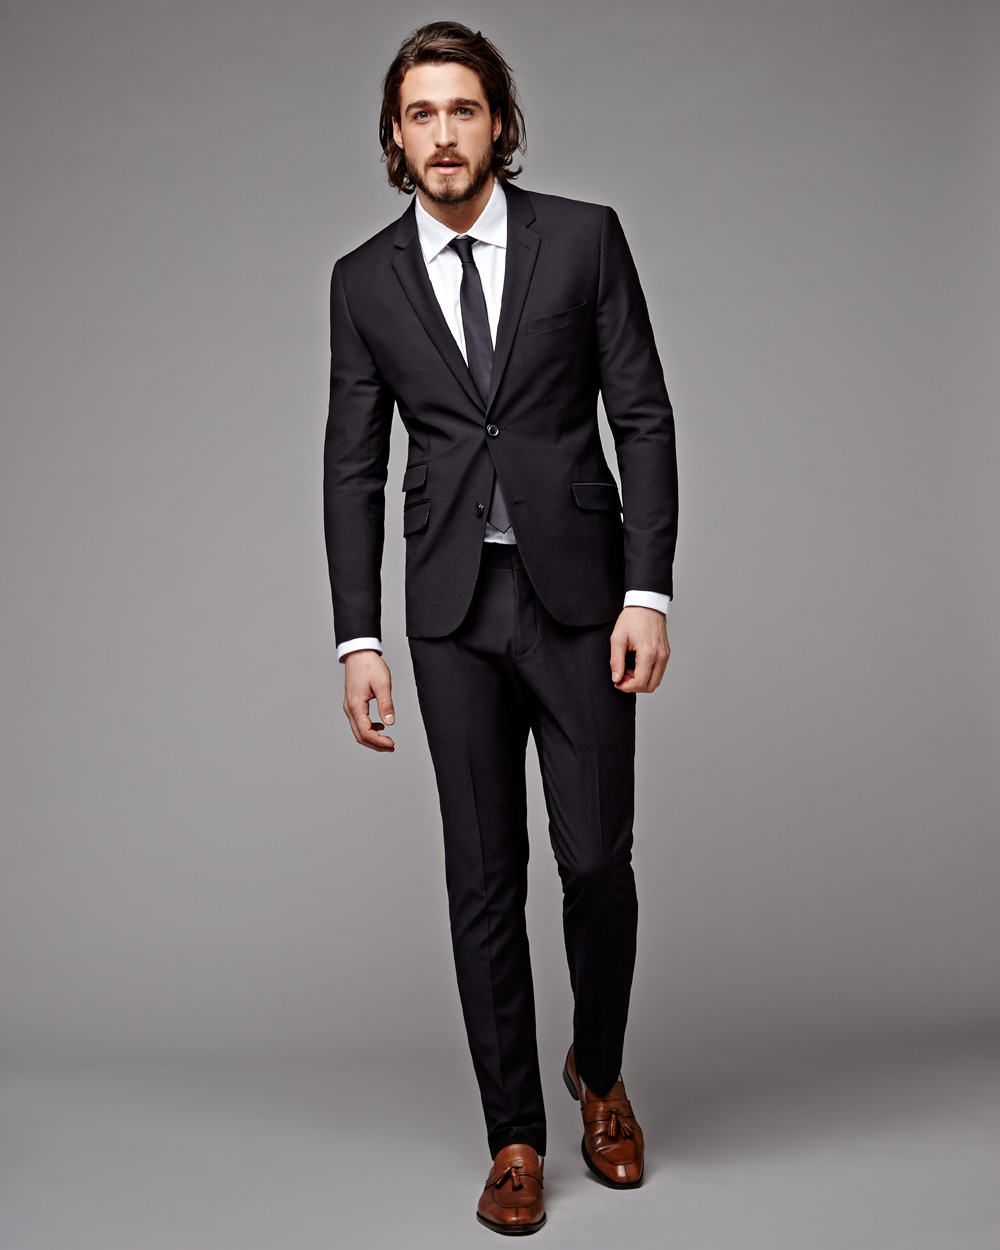 2017 italian style black wedding suits for men tailor made